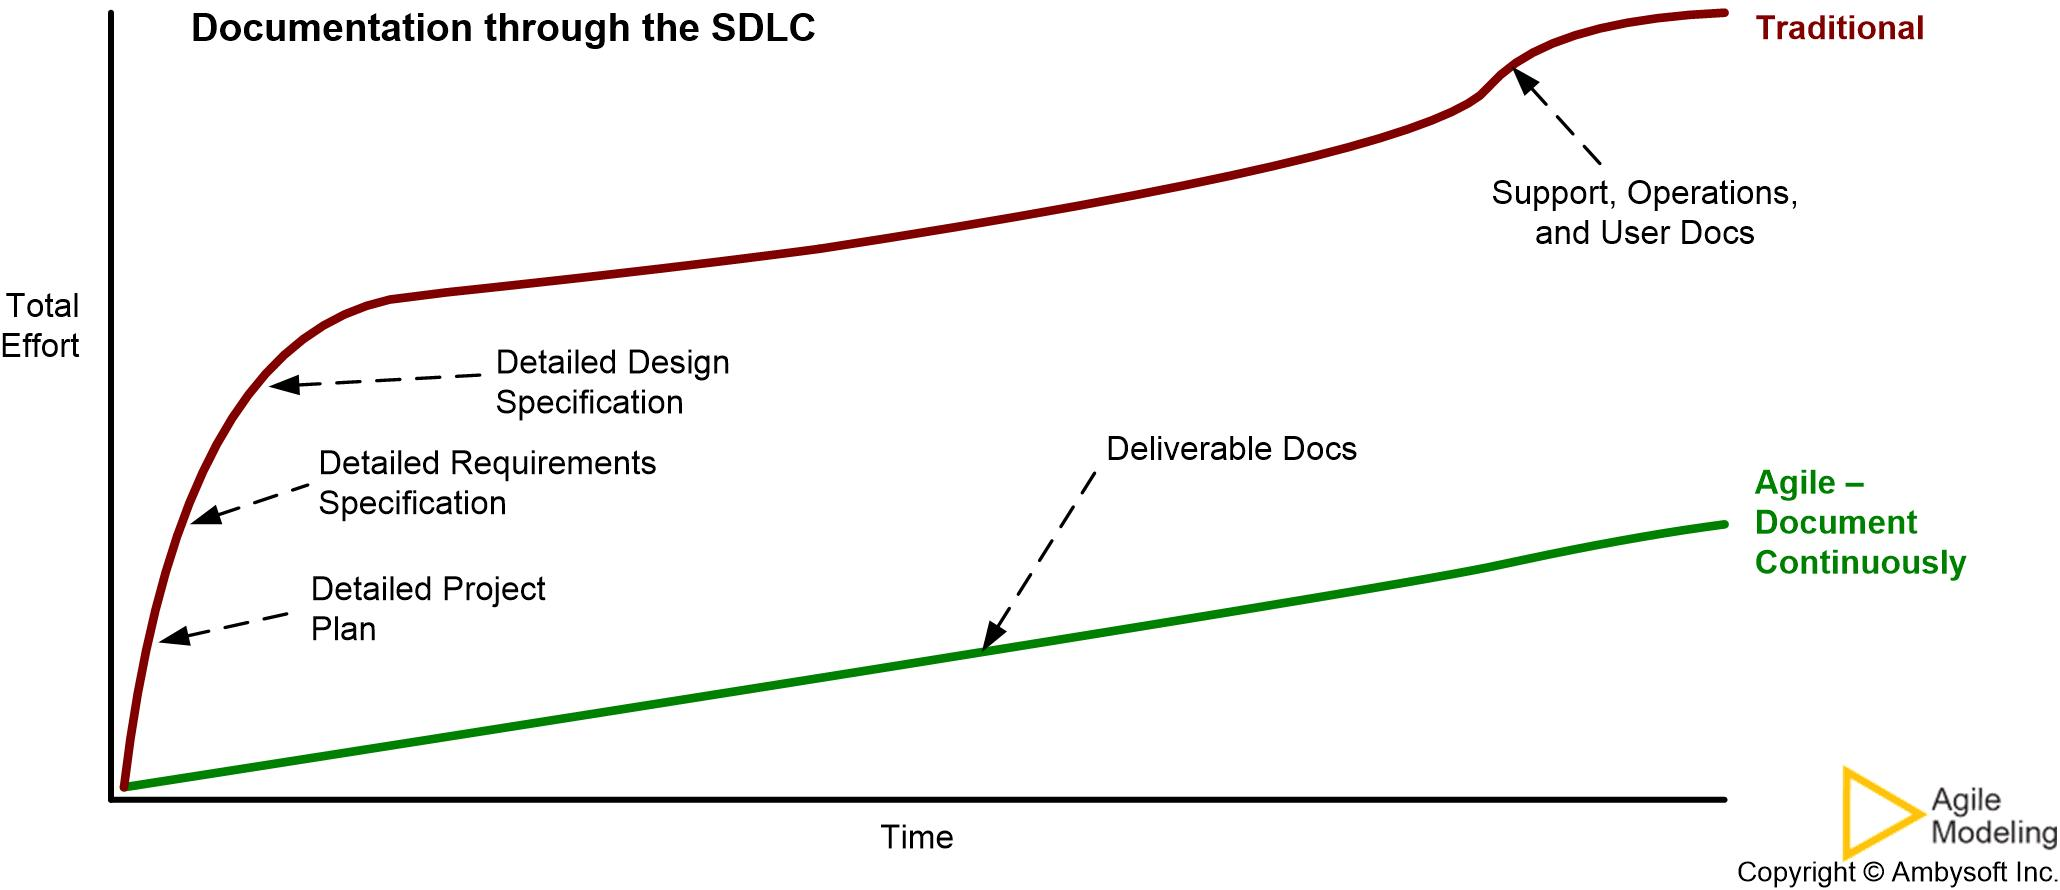 Agile Documentation - Document Continuously strategy